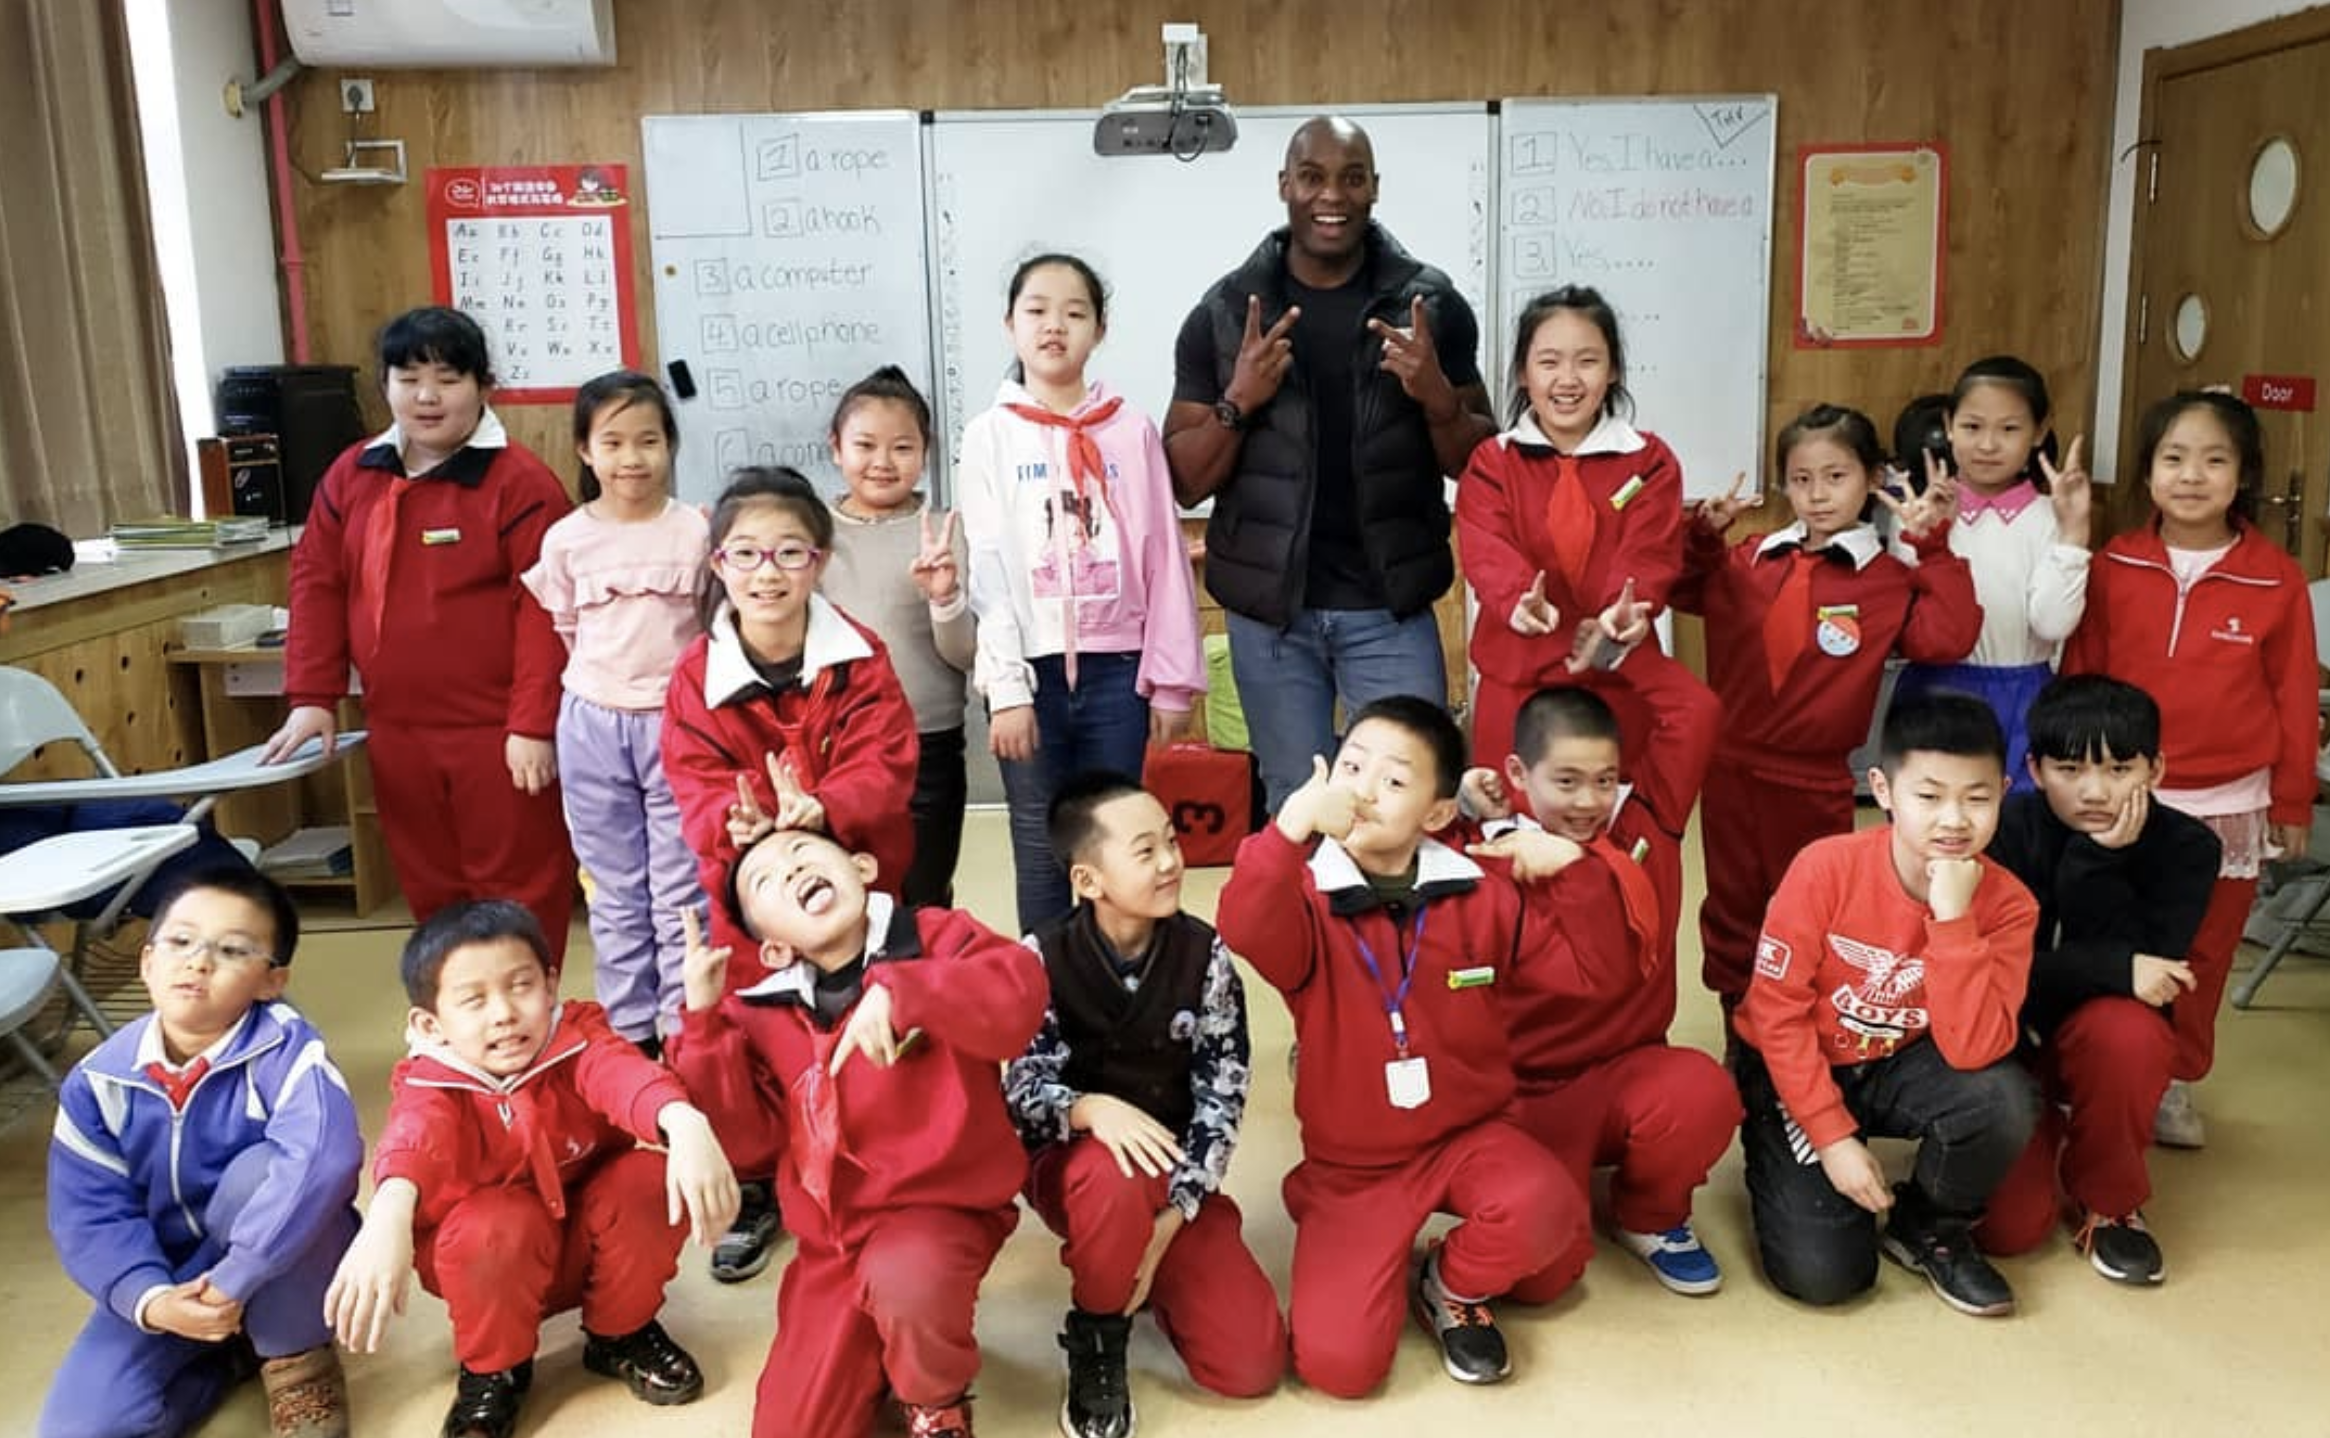 A 6-Step Plan for Getting Hired to Teach English in China in 2020